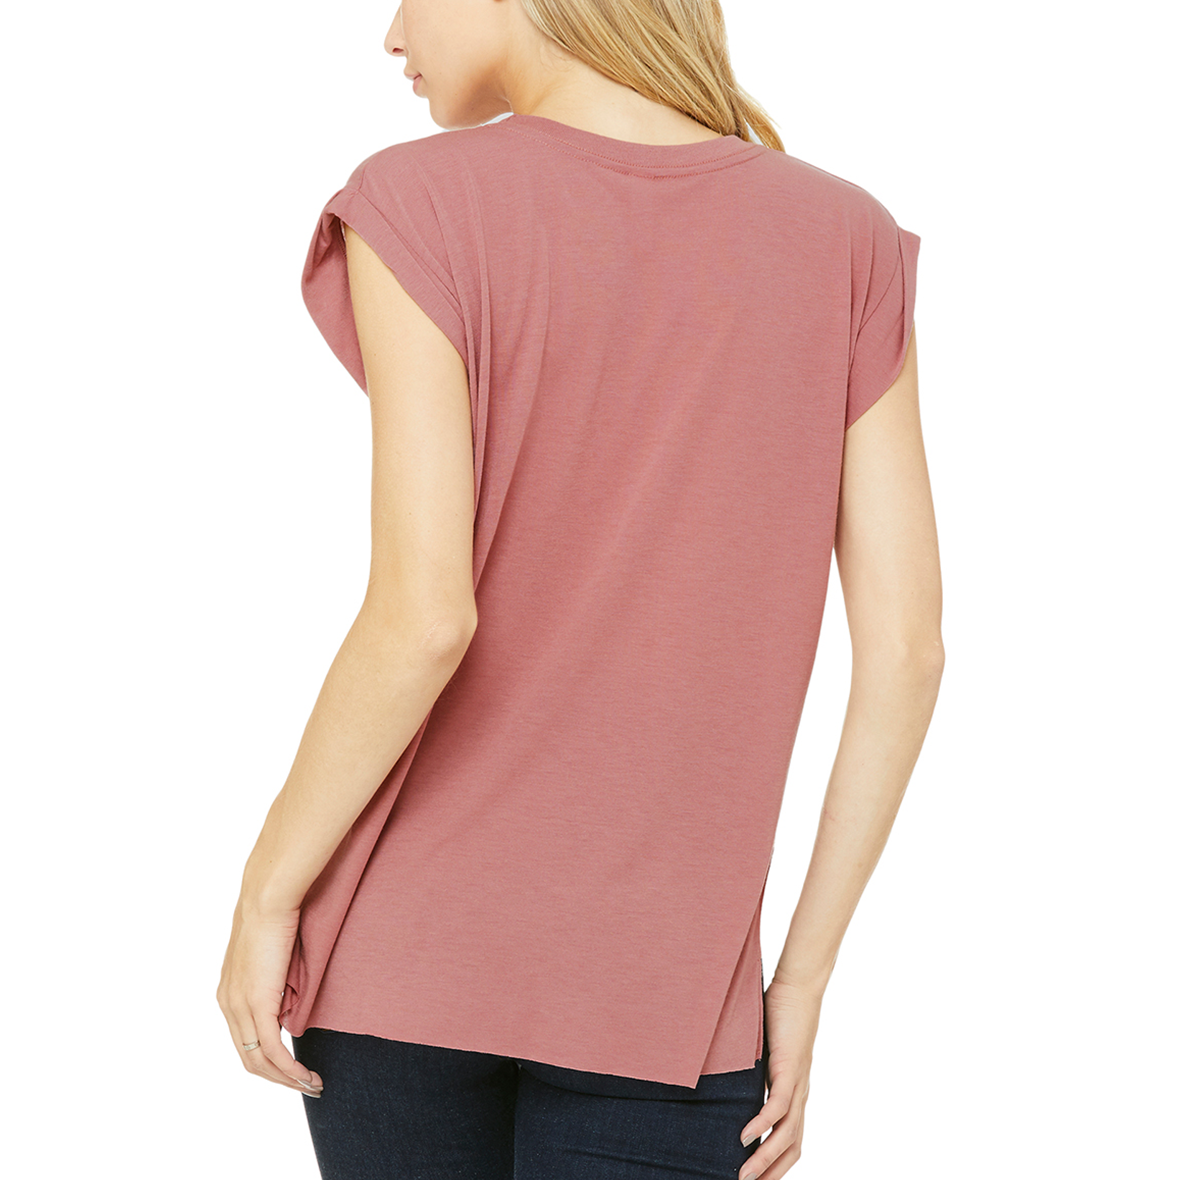 Strong as a Mother - loose fitting, flowy t-shirt for women. This would be the perfect gift for Mother's day!